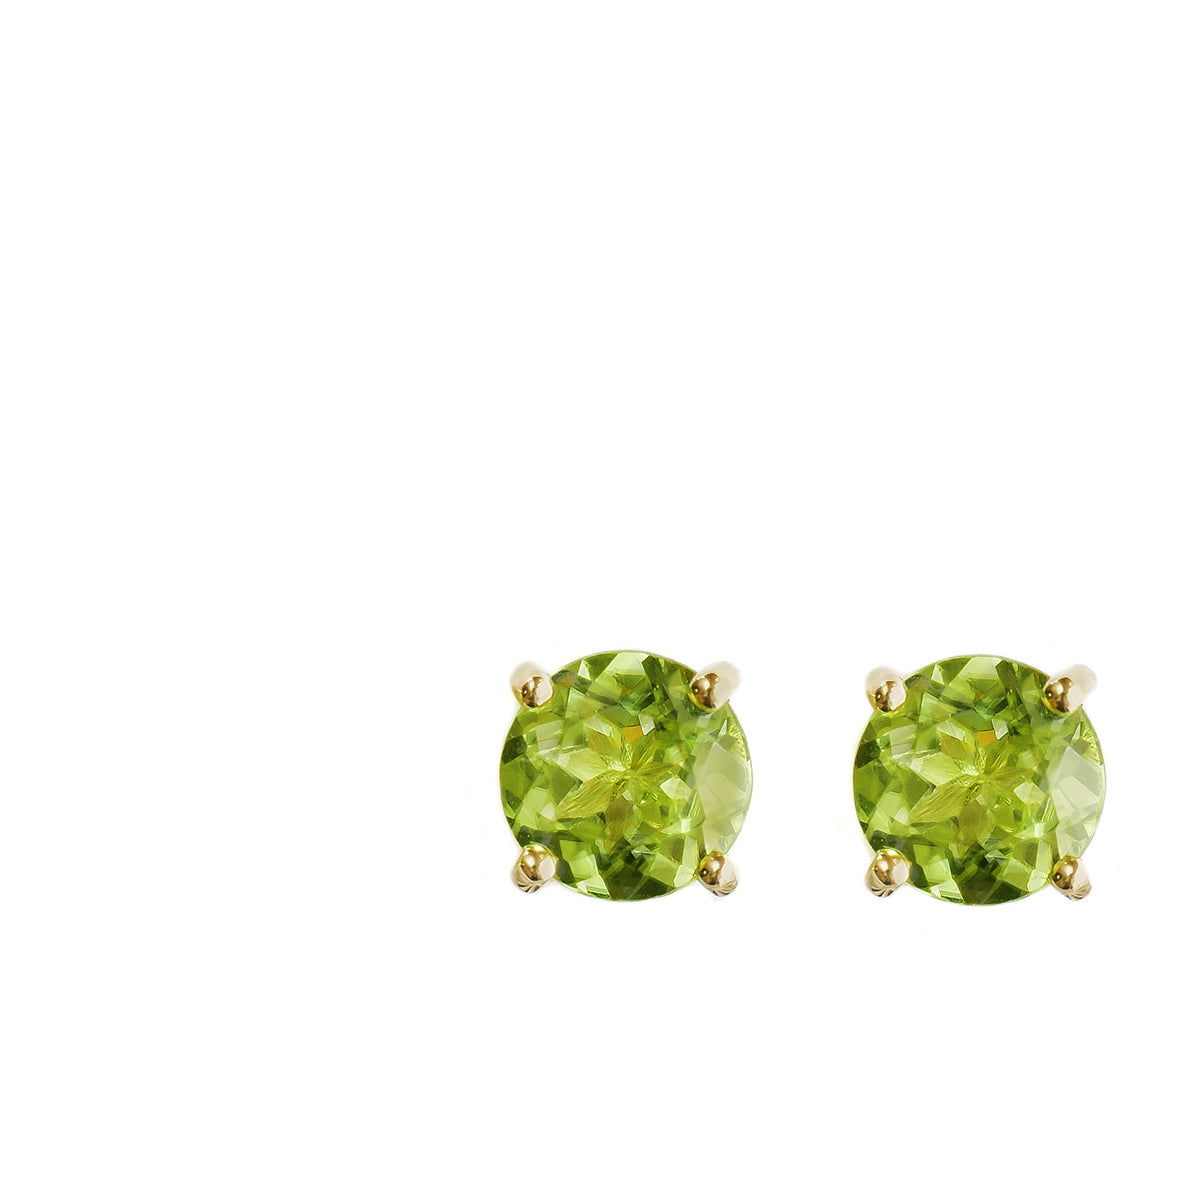 earrings jewellery stud august original silver birthstone peridot products